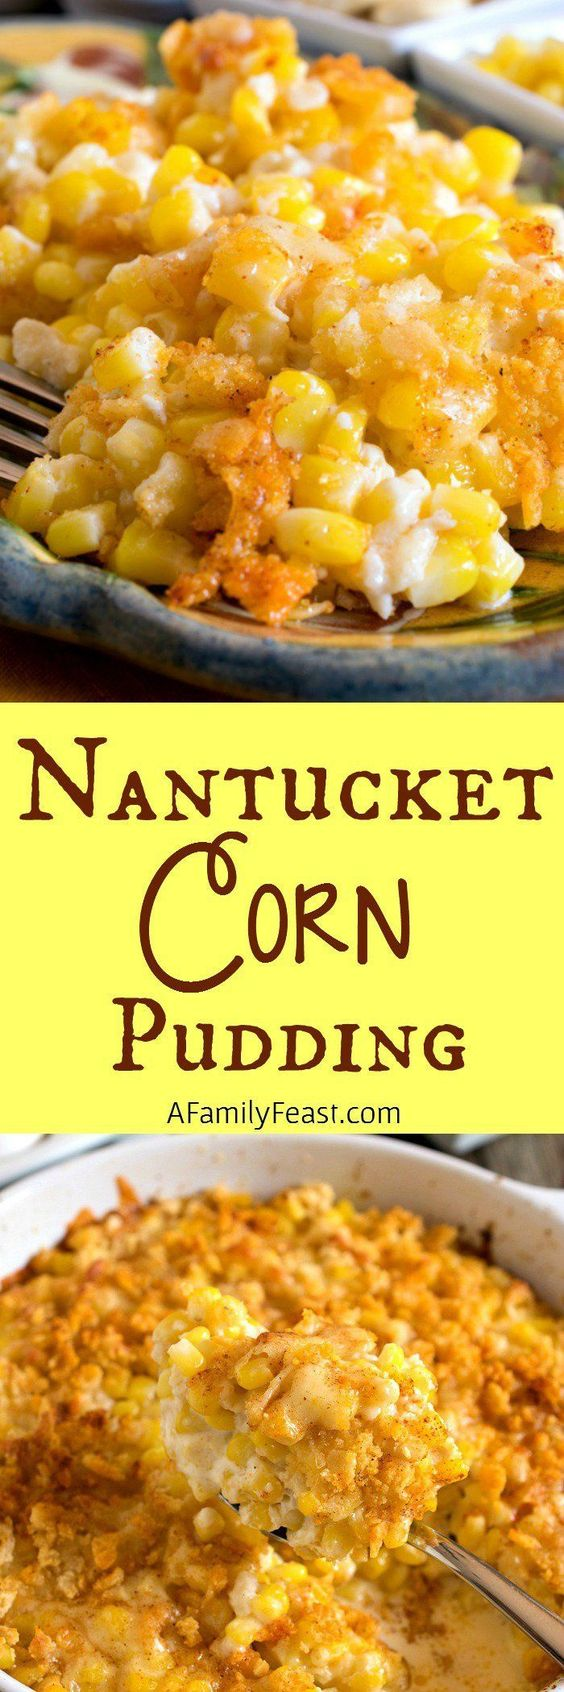 Nantucket Corn Pudding.